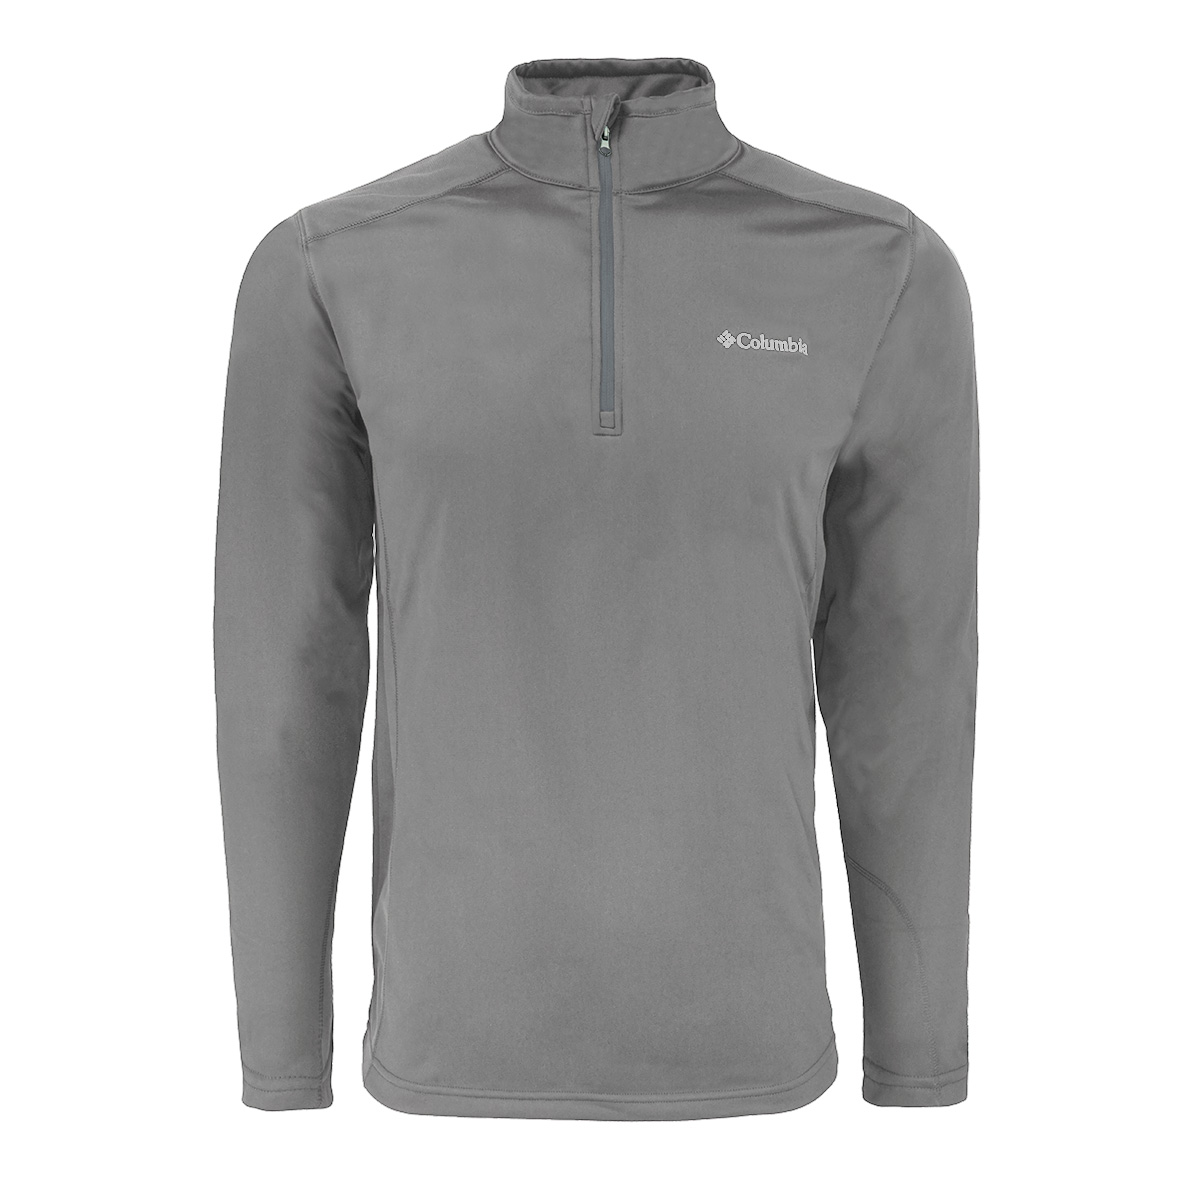 Columbia-Men-039-s-Tech-Pine-Ridge-Half-Zip-Jacket